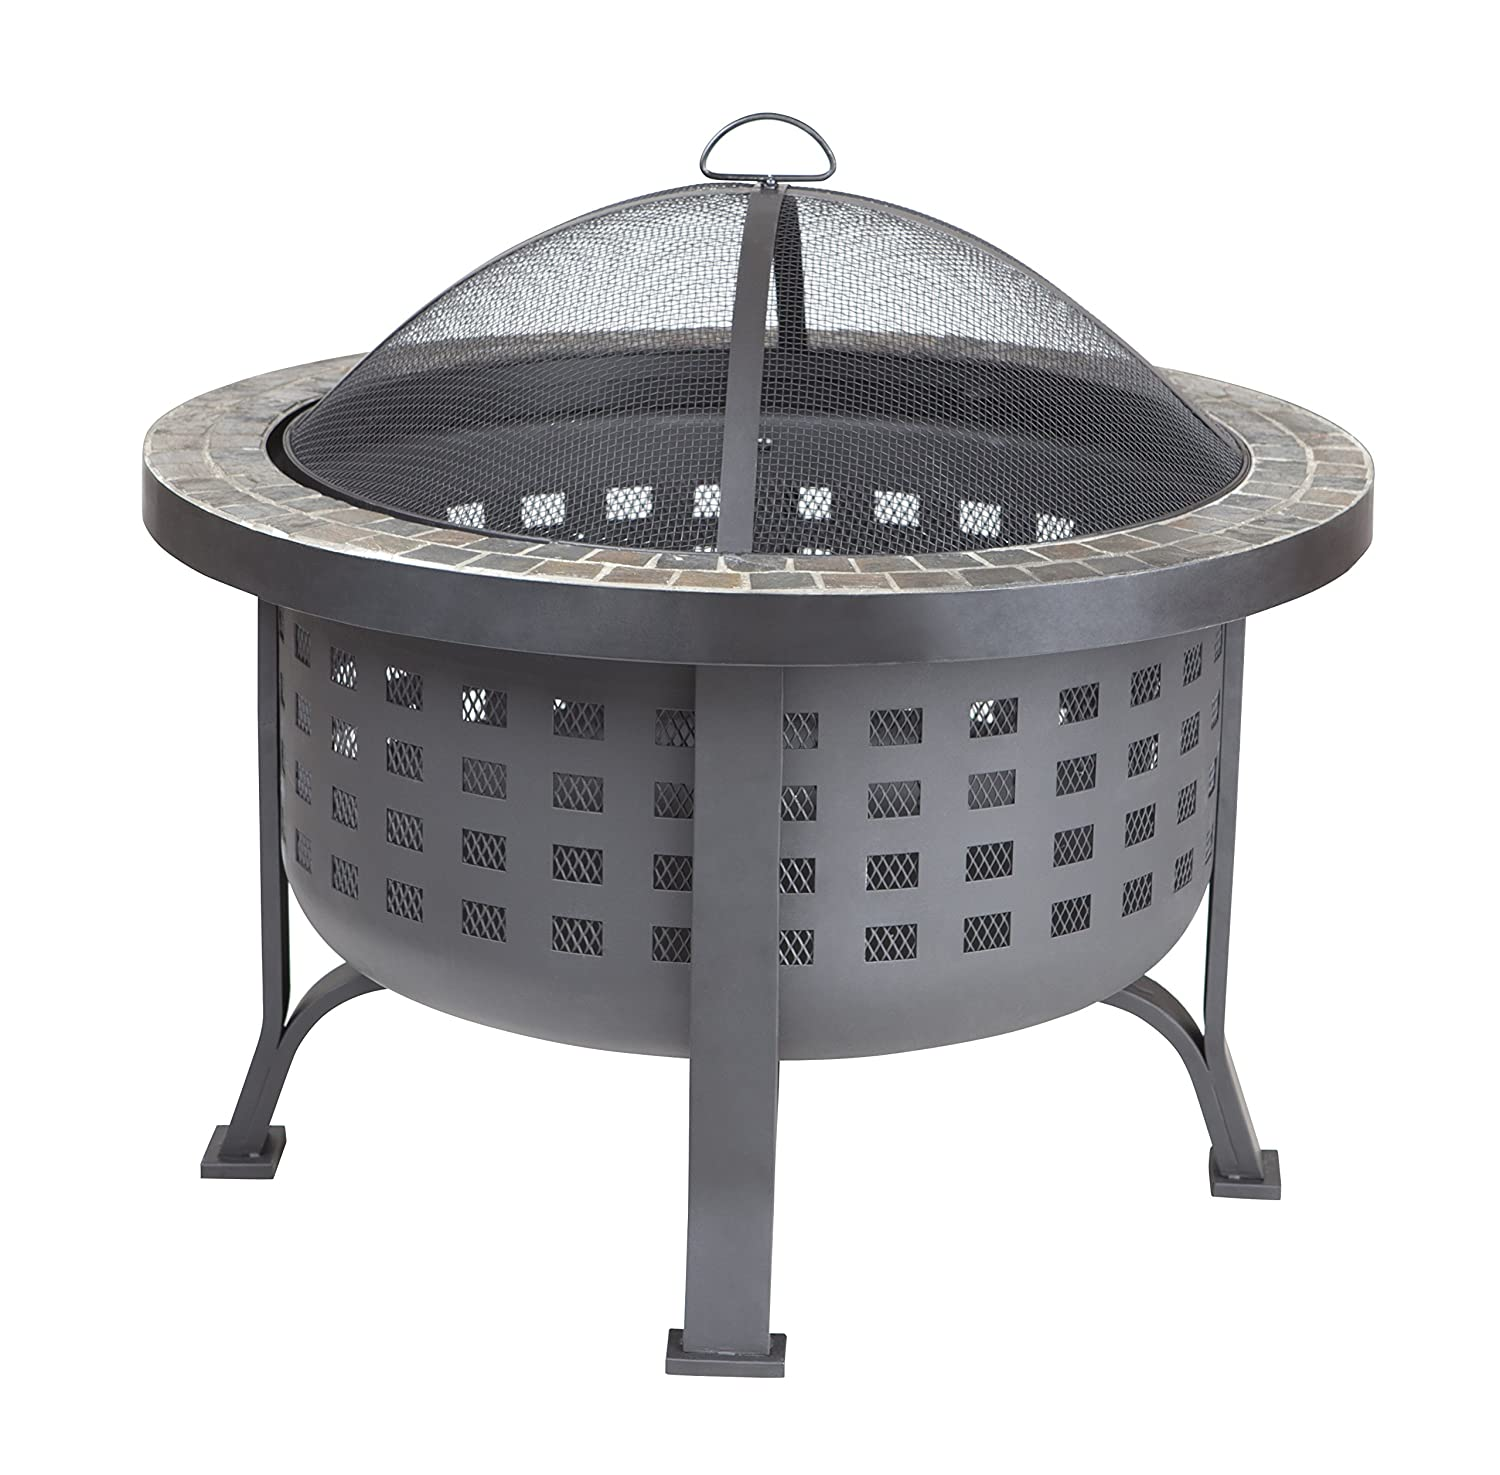 Fire Sense 62240 Alpina Round Slate Top Fire Pit, Multicolor